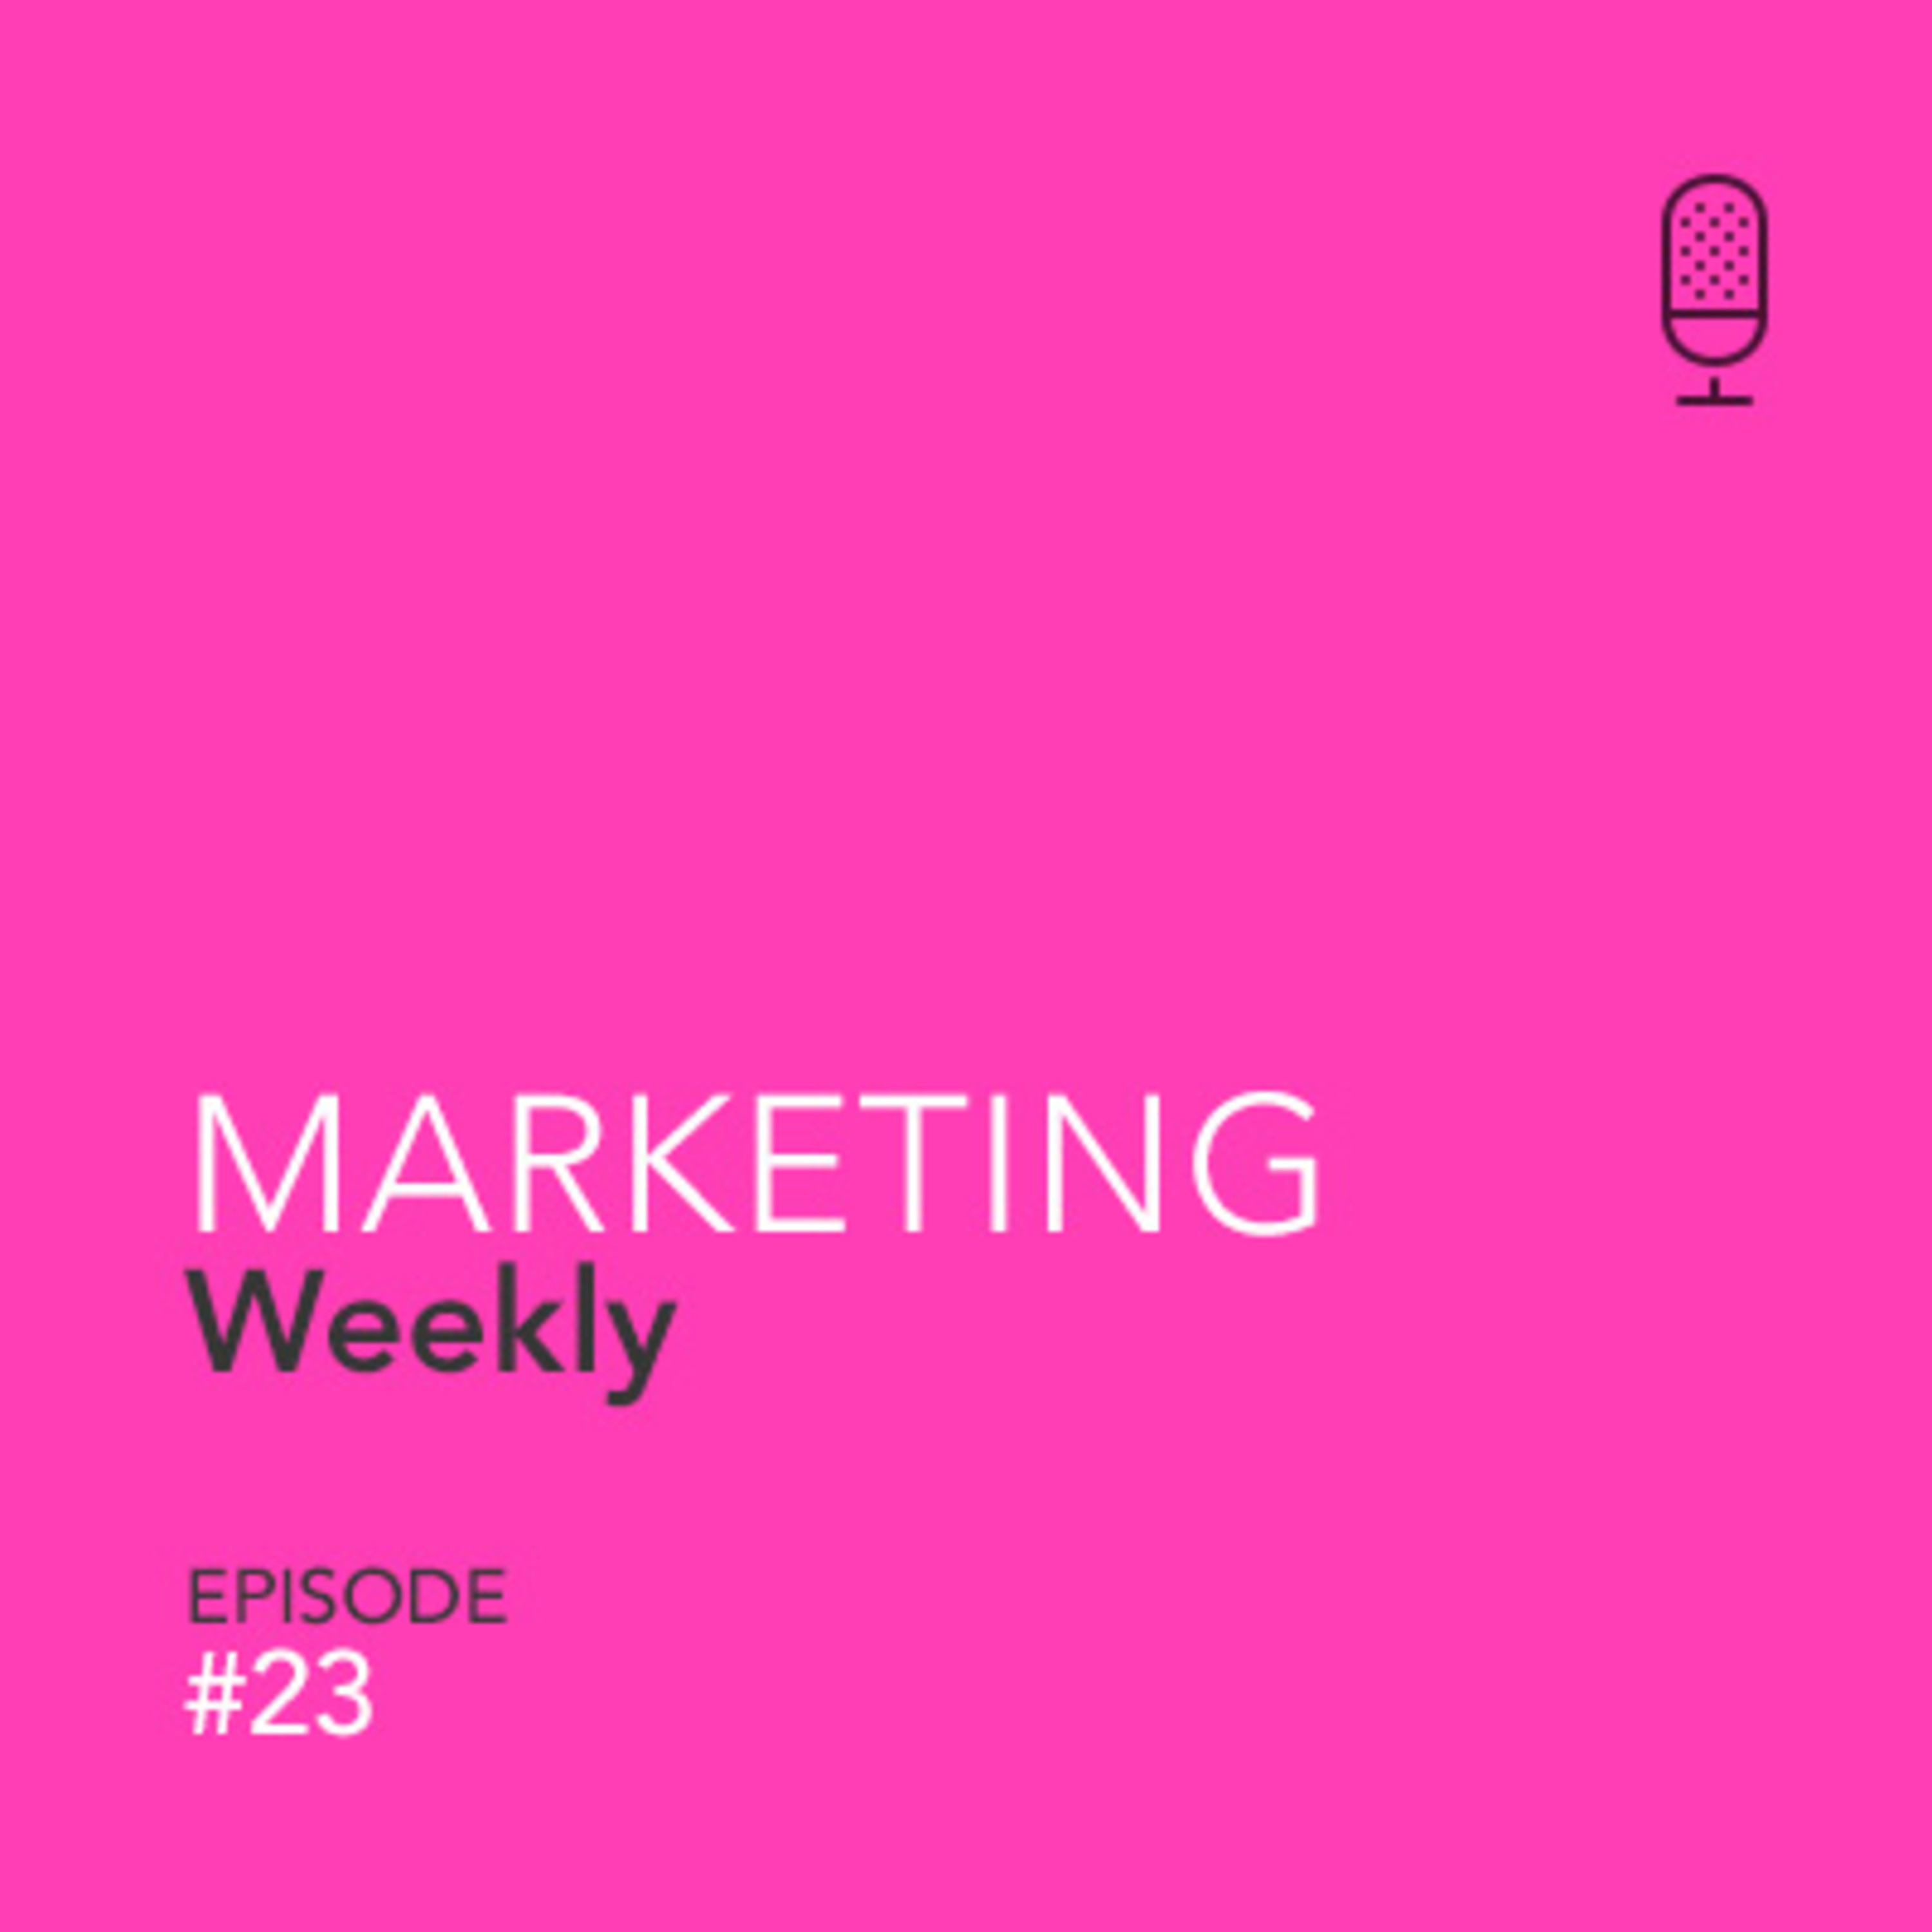 Marketing W23 - The last 'uneventful' week